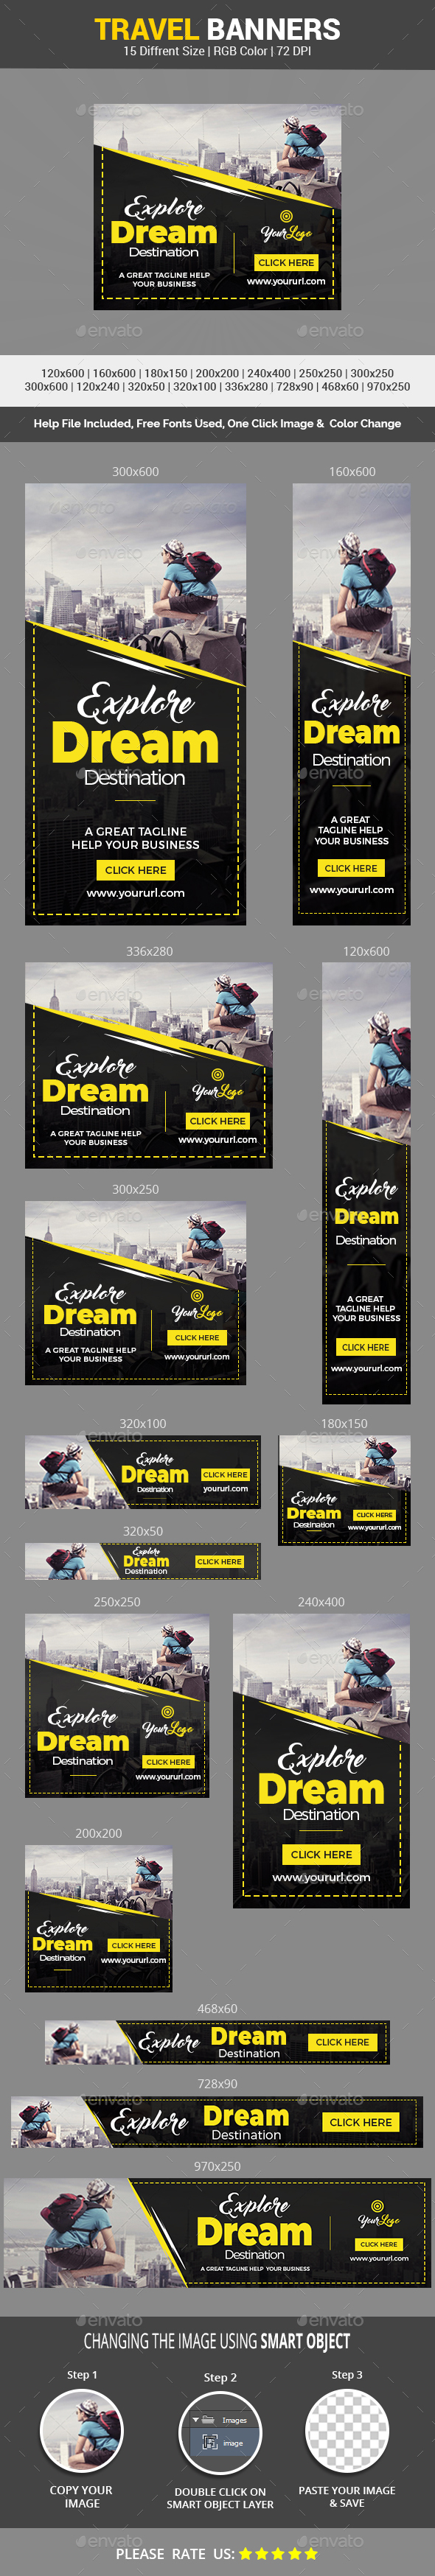 GraphicRiver Travel Banner Vol.4 21189660